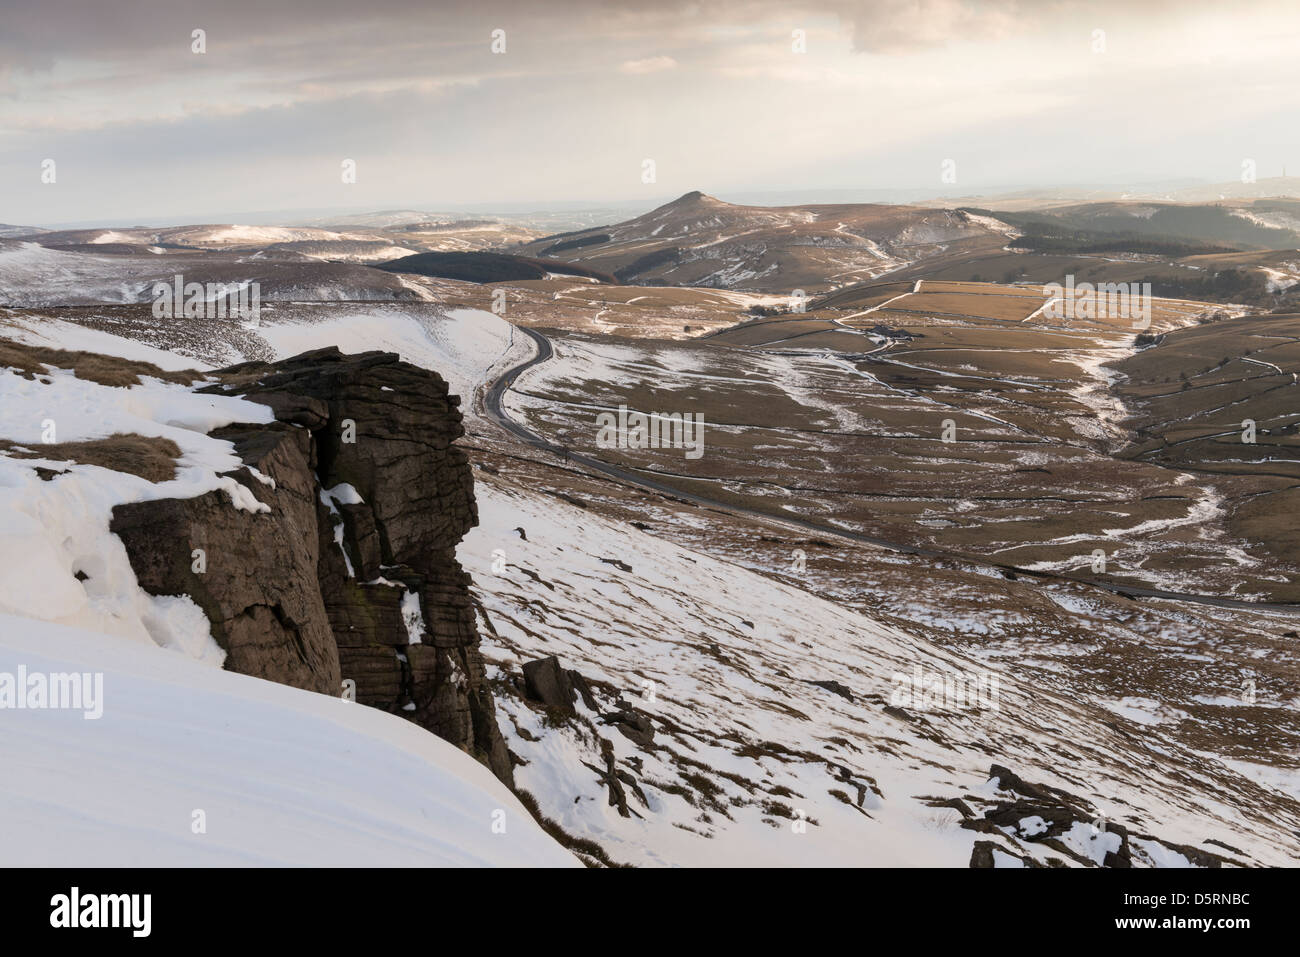 View from Shining Tor, The Peak District - Stock Image